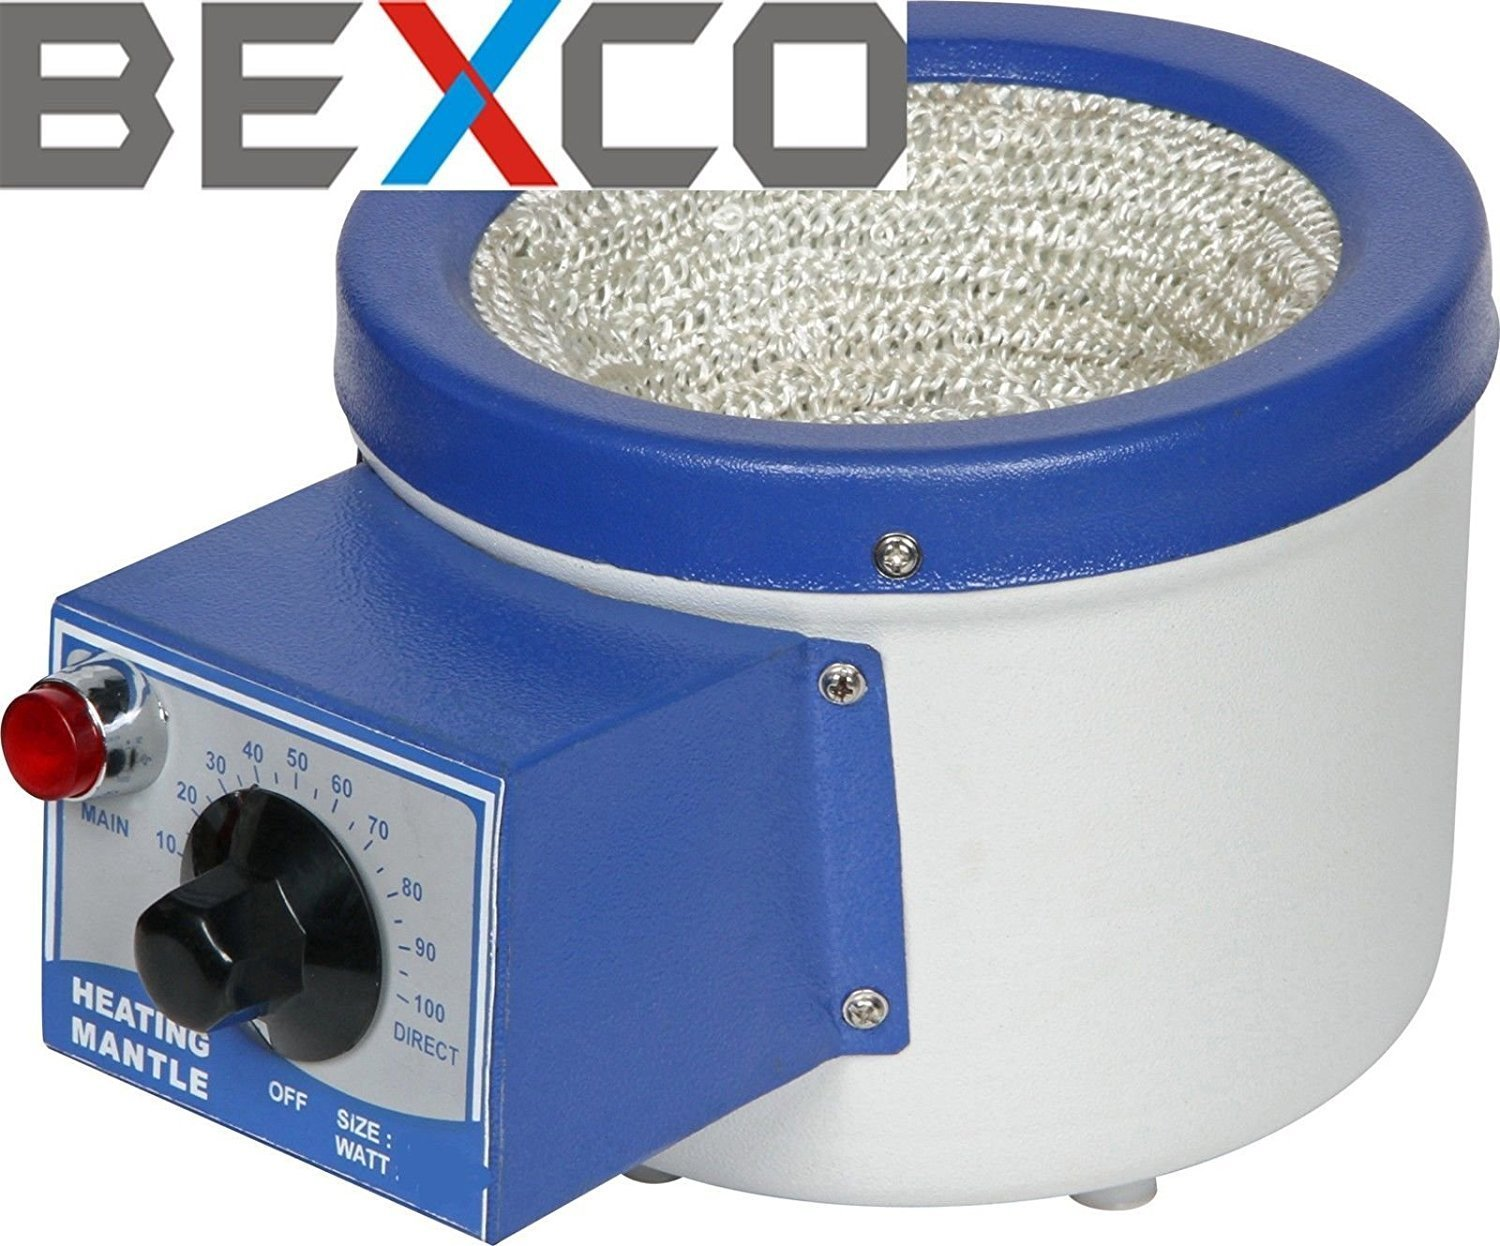 Heating Mantle for Round Bottom Flask 110V 500ml Best Quality Original Item of Brand BEXCO DHL Expedited Shipping by BEXCO